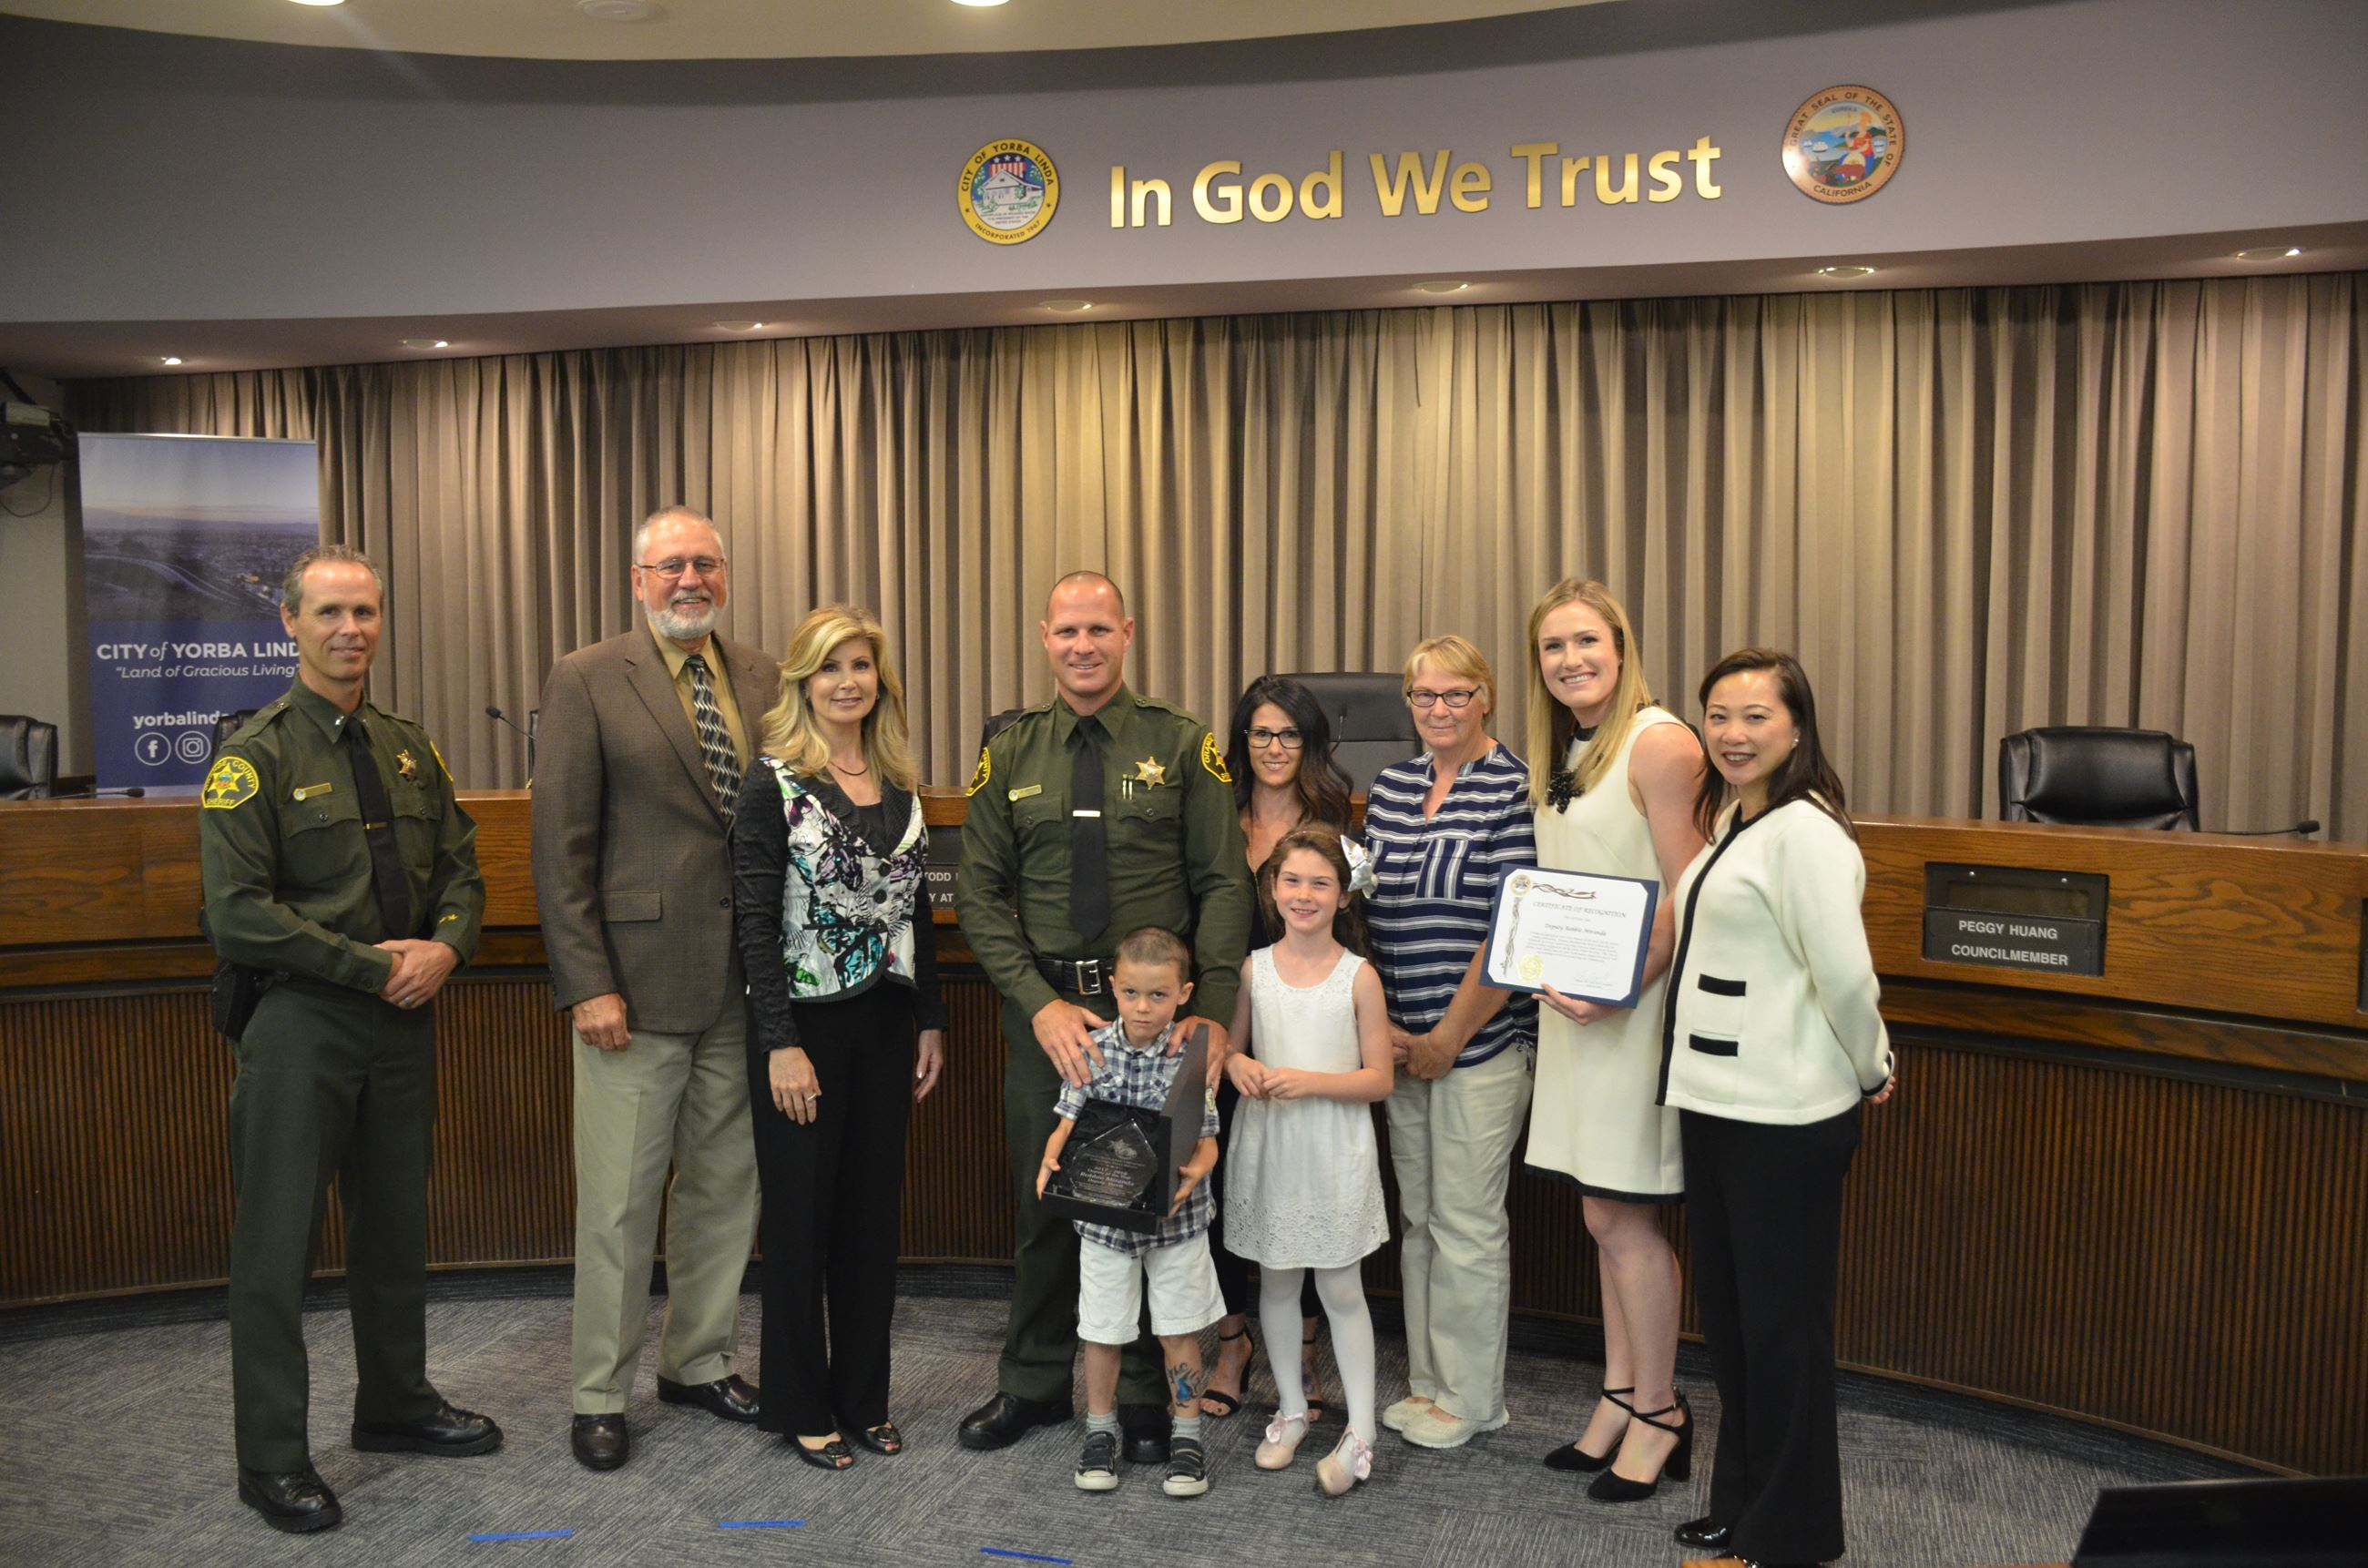 Deputy Miranda and Family - group photo with Council